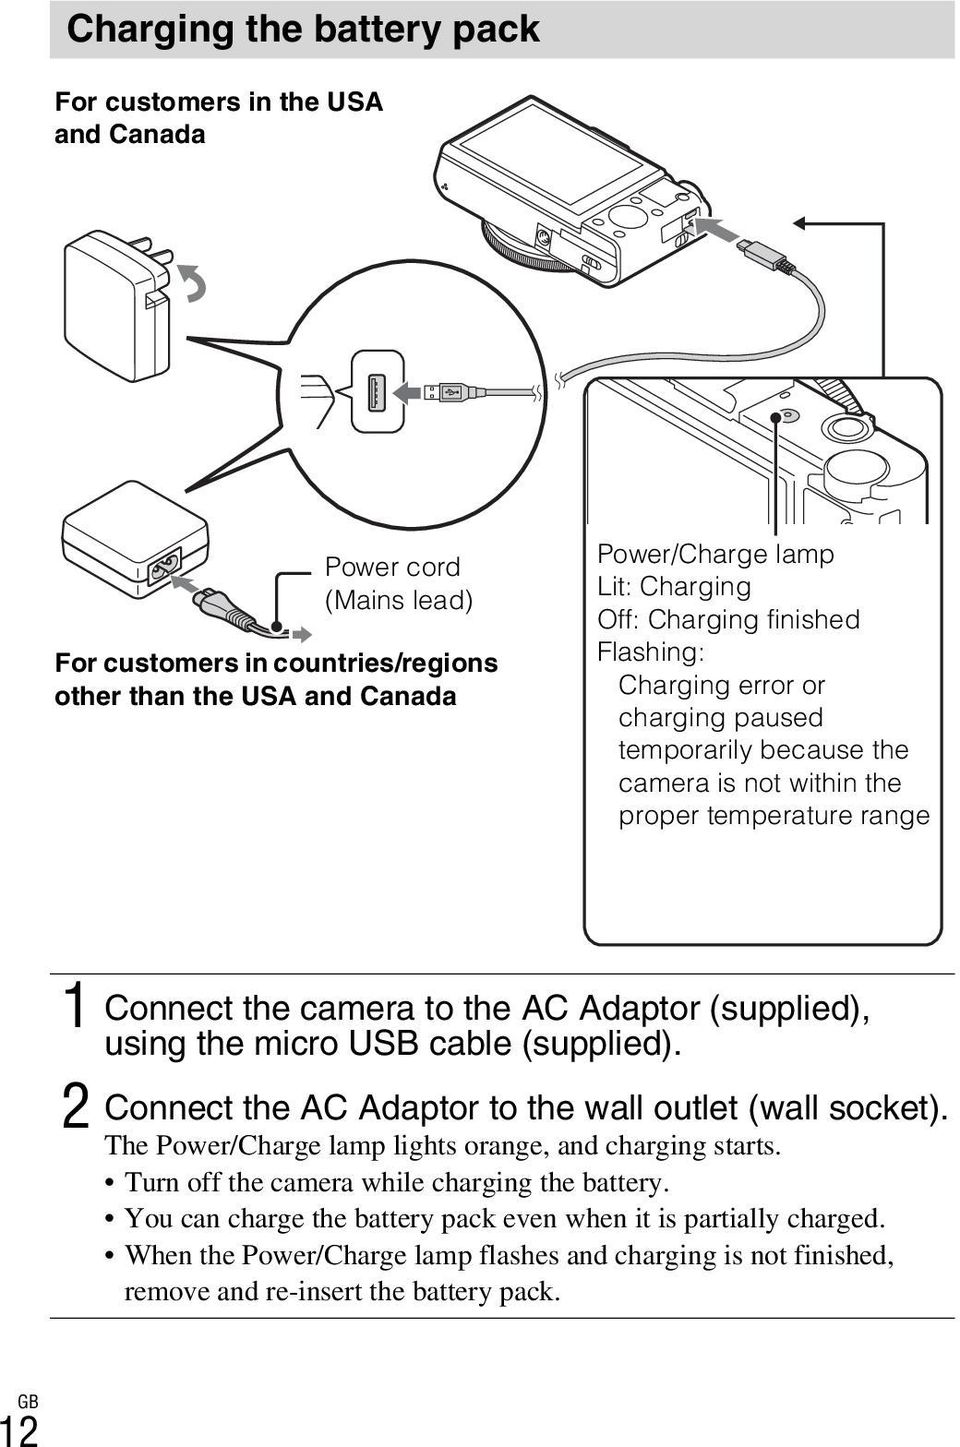 using the micro USB cable (supplied). 2 Connect the AC Adaptor to the wall outlet (wall socket). The Power/Charge lamp lights orange, and charging starts.